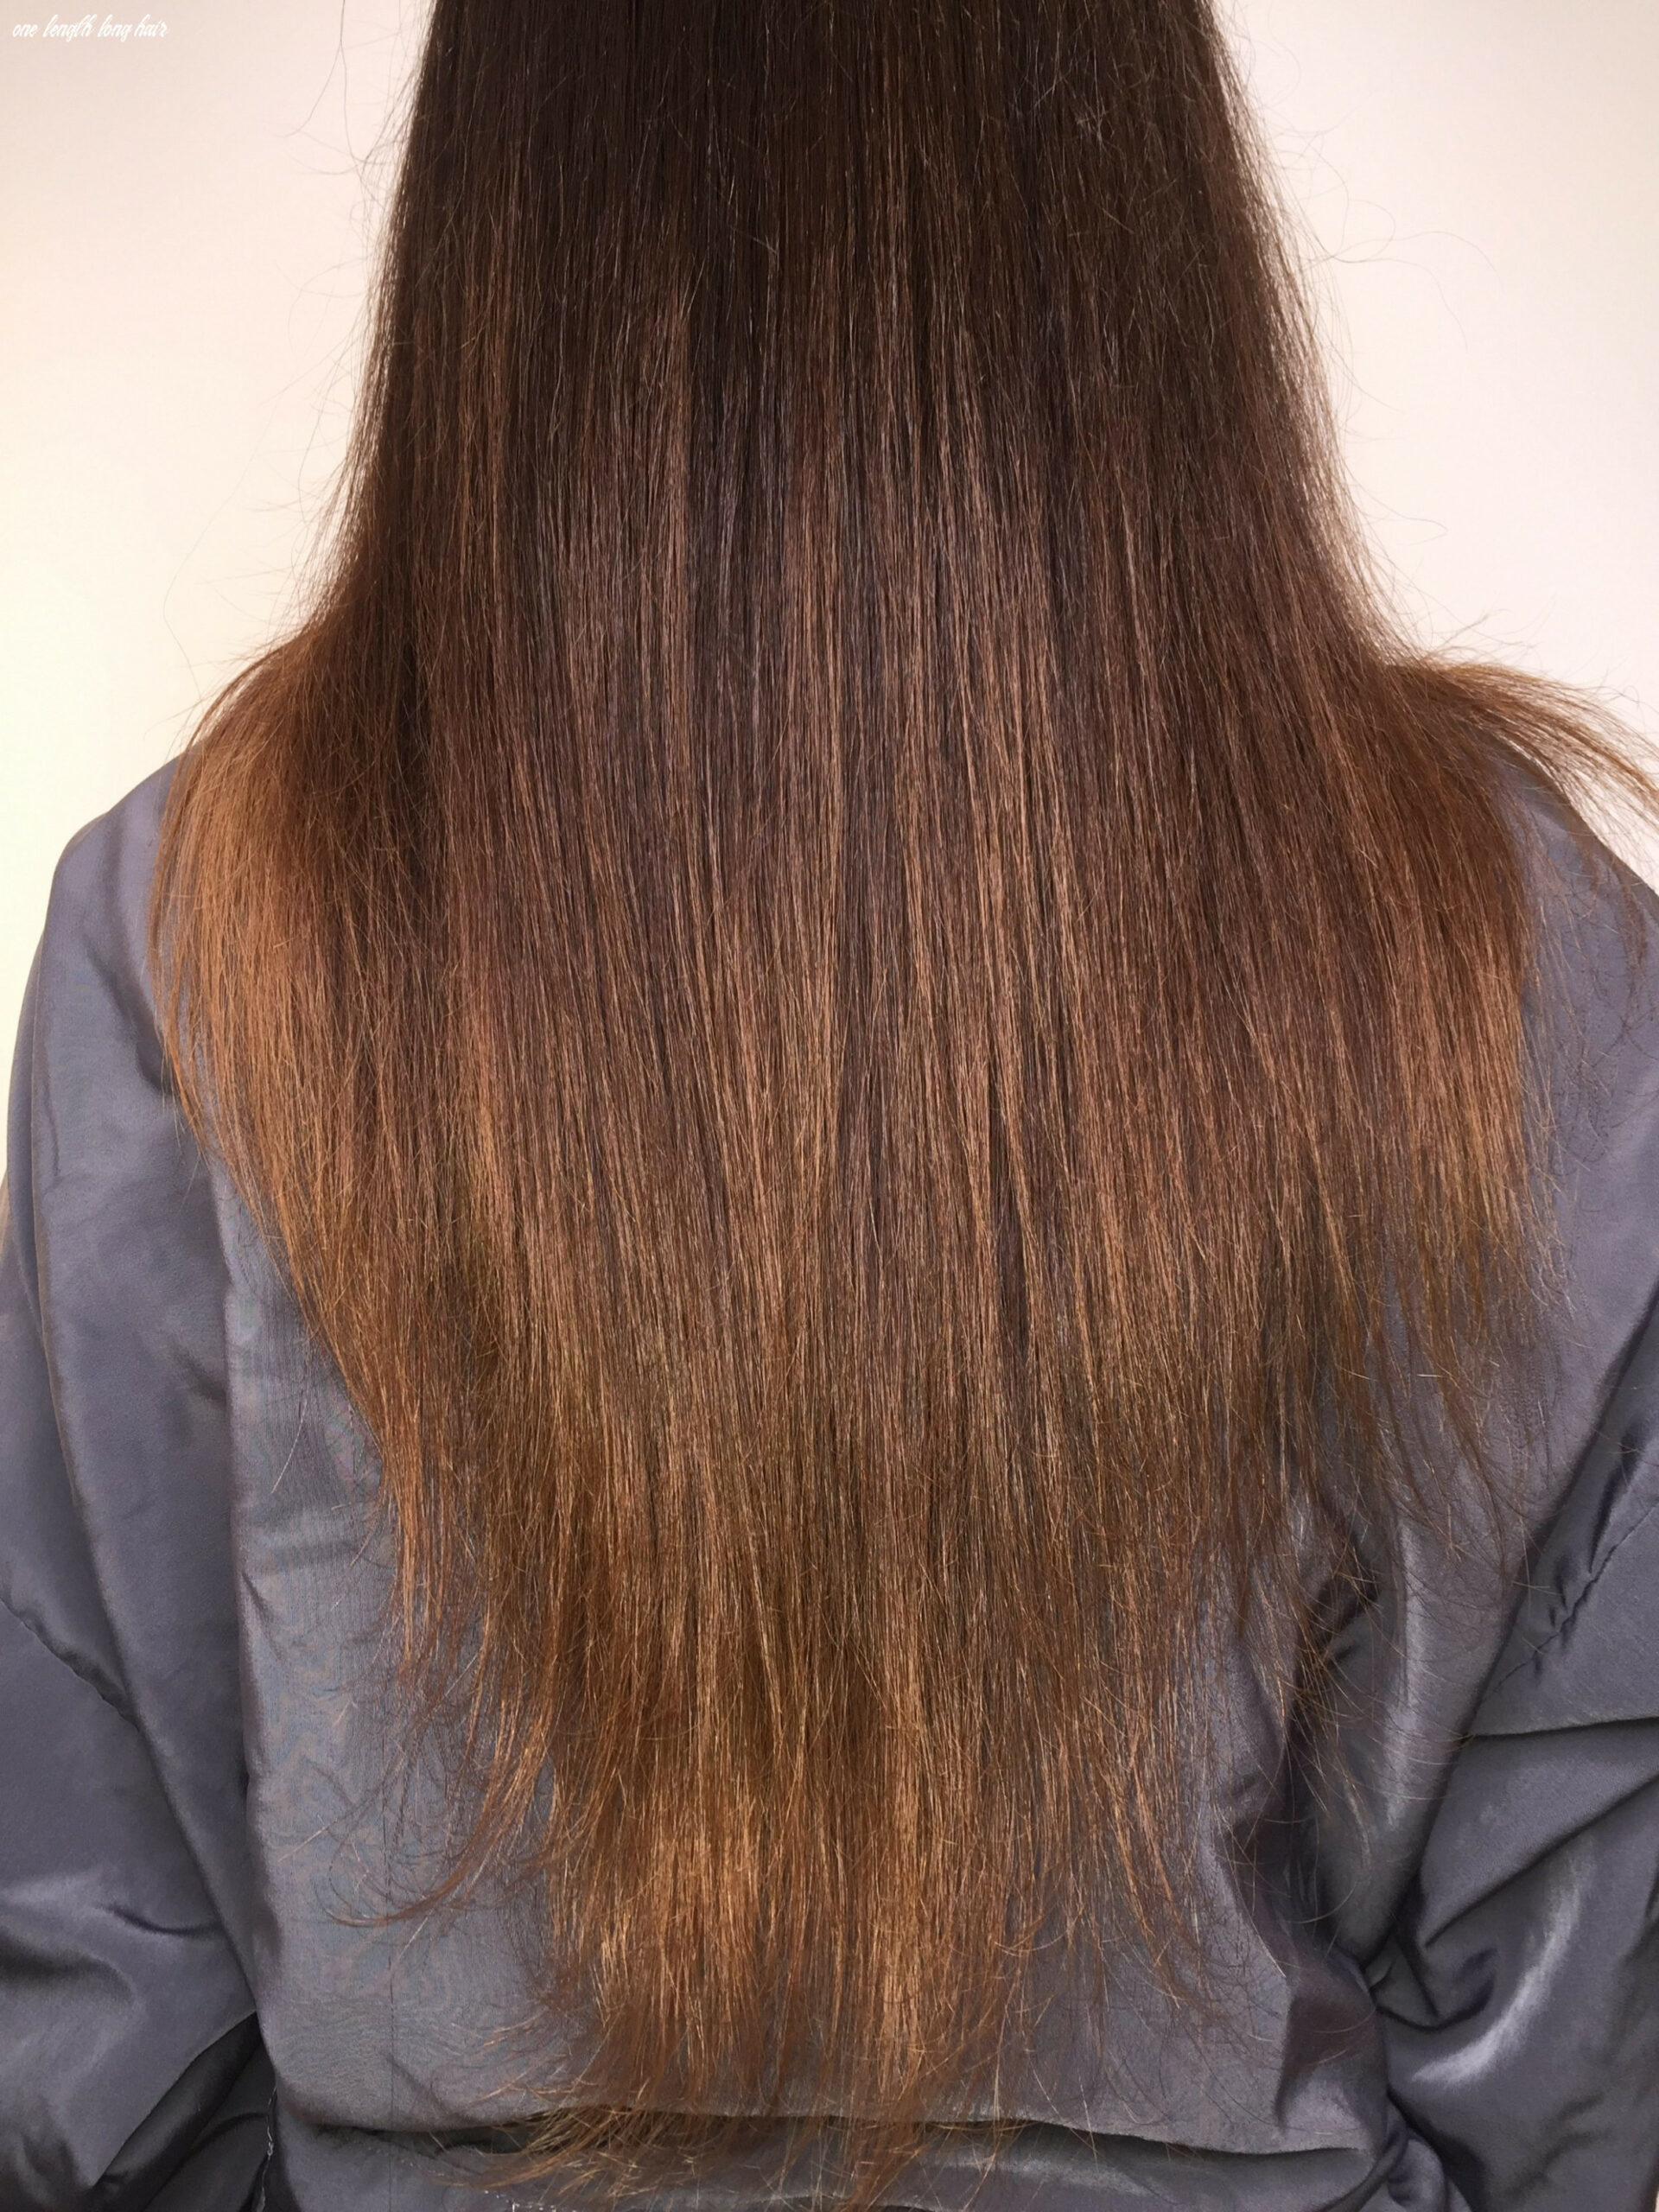 I Didn't Cut My Hair for 11 Months and This Is What Happened